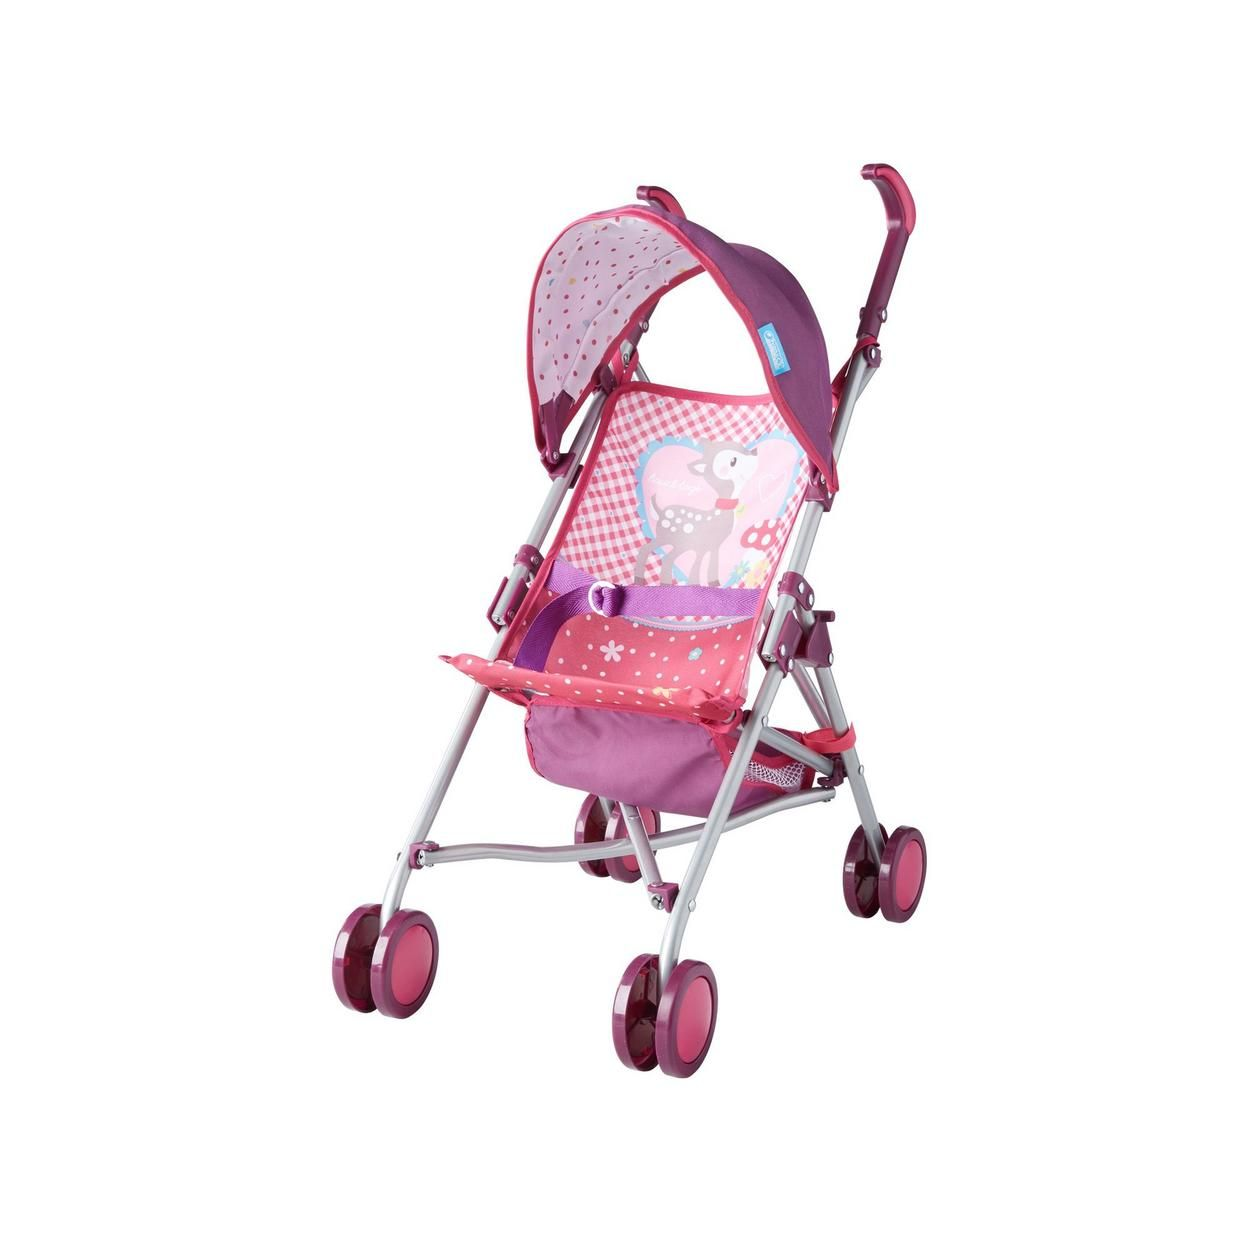 Buy Woody Doll Umbrella Stroller Online & Reviews (With